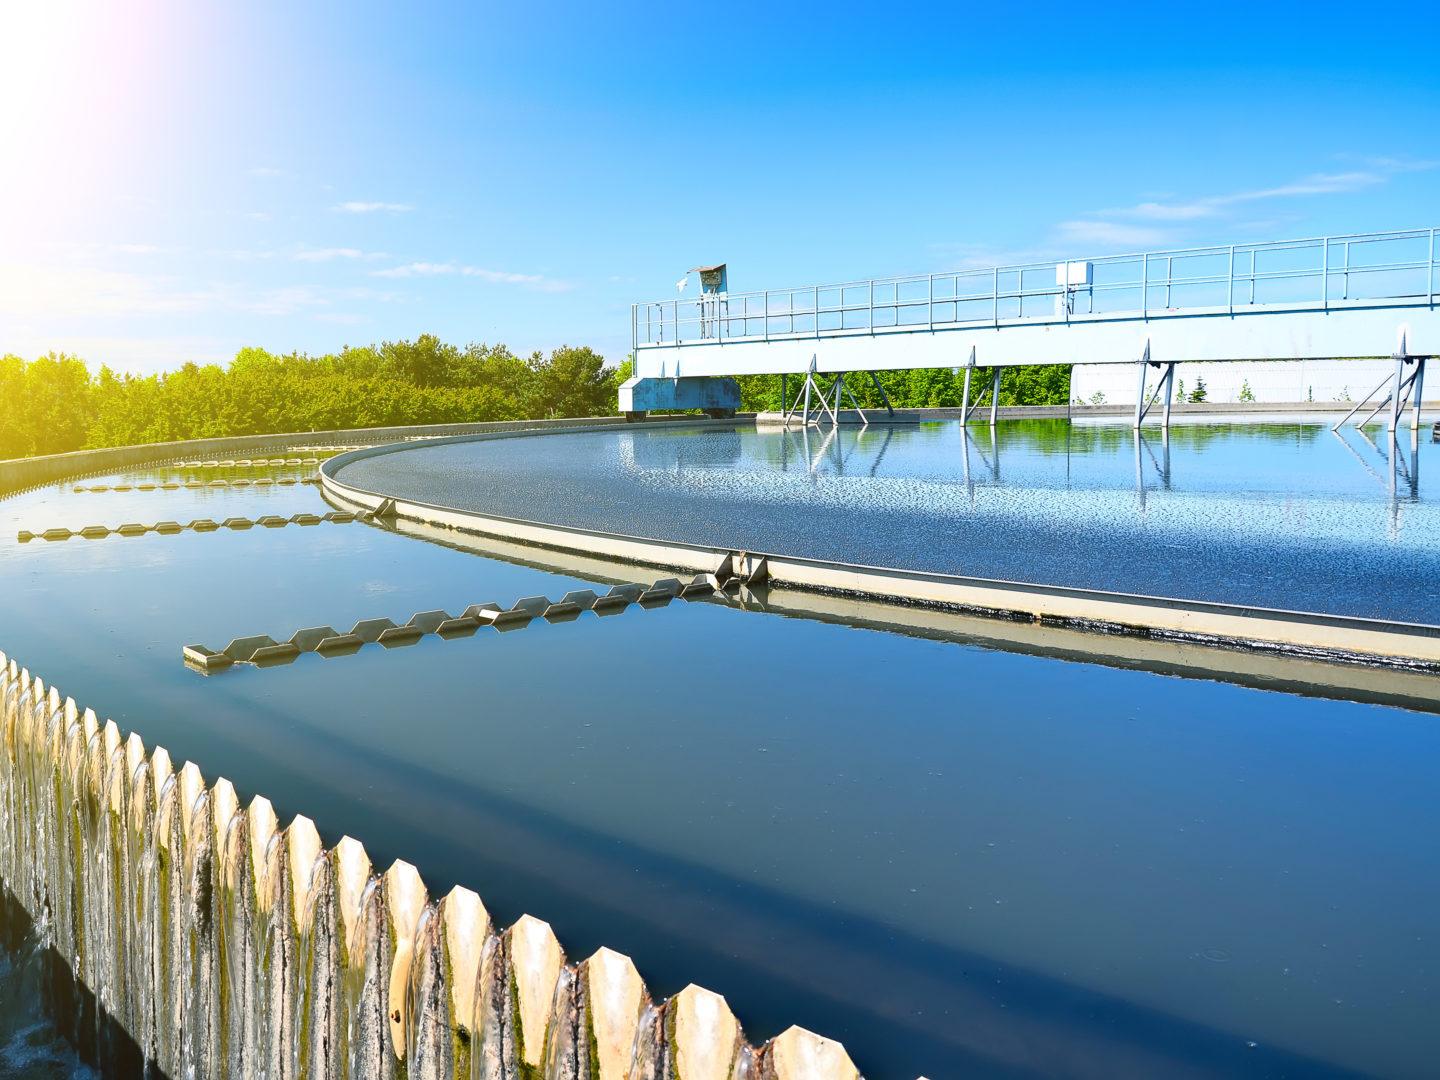 Urban wastewater treatment plant